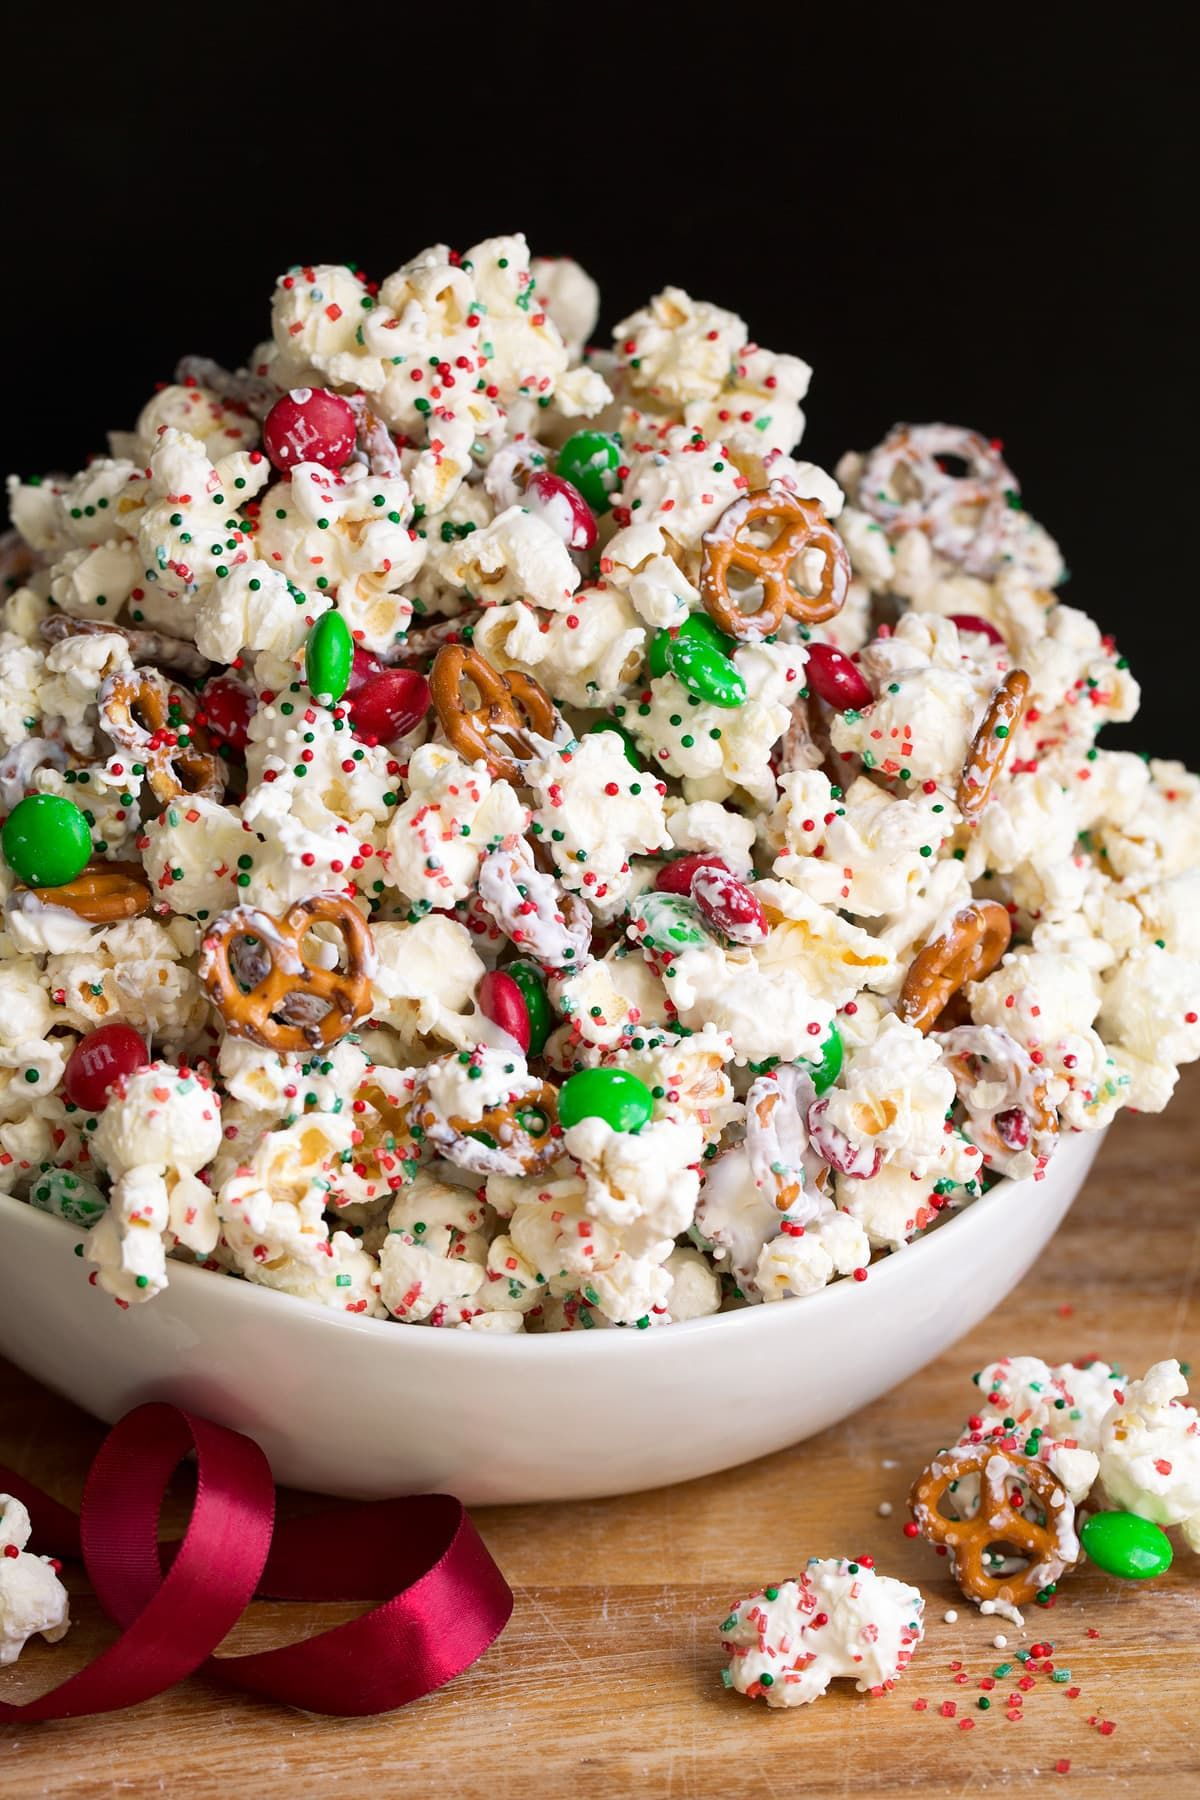 Christmas Crunch. Bring some holiday spirit to your snacks